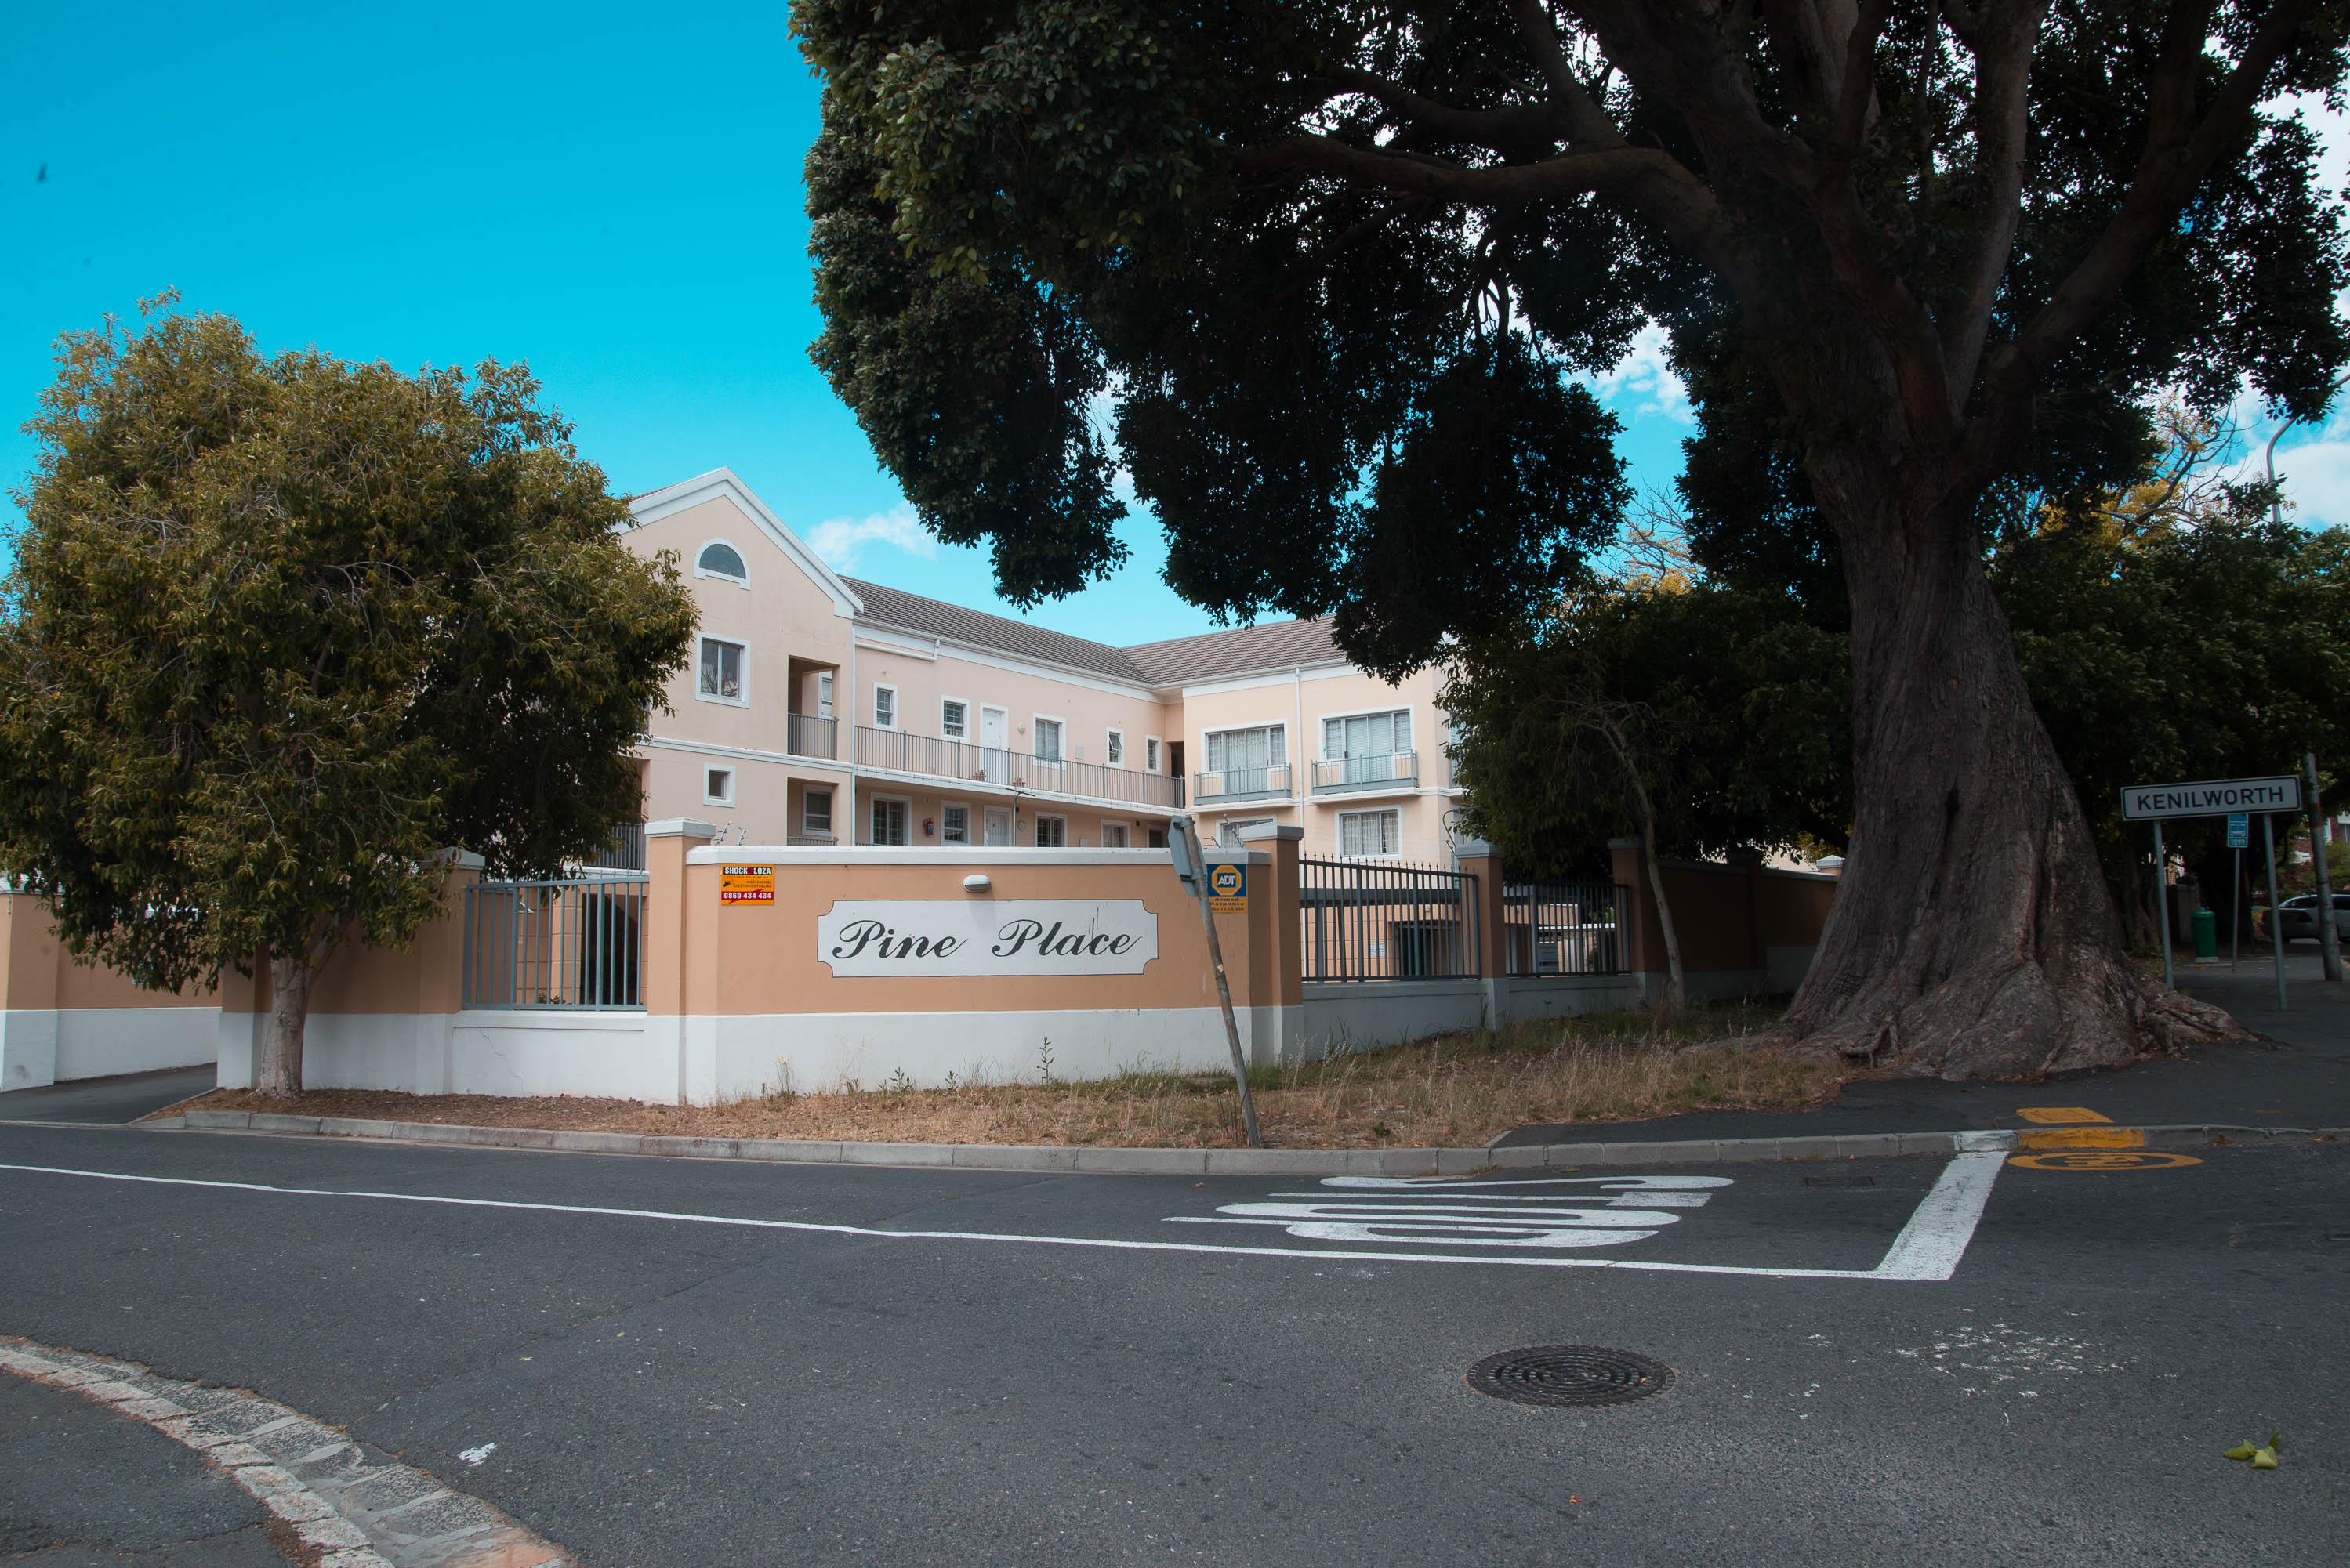 2 Bedroom Apartment For Sale in Kenilworth - CPT - Private Sale - MR127381